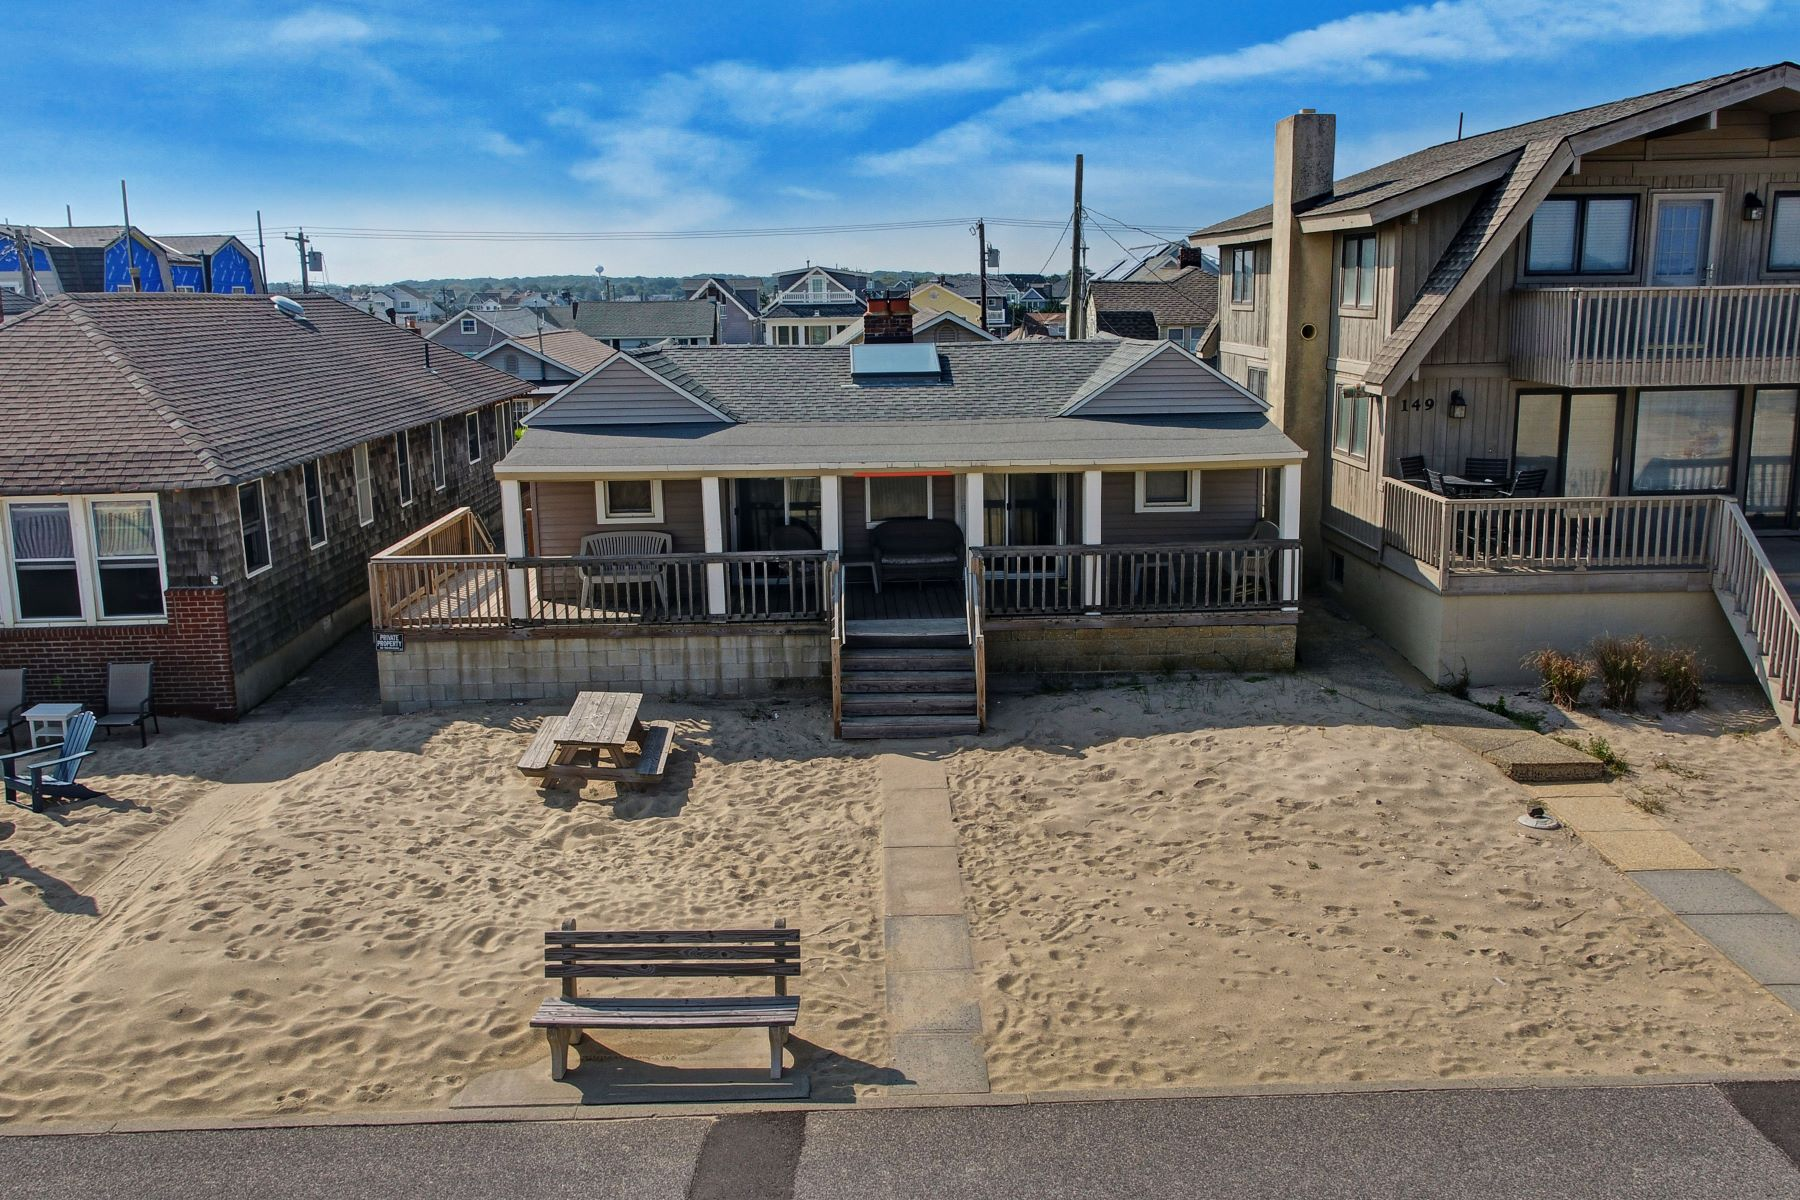 Single Family Home for Sale at Beachfront Extraordinary Value 153 Beachfront, Manasquan, New Jersey 08736 United States